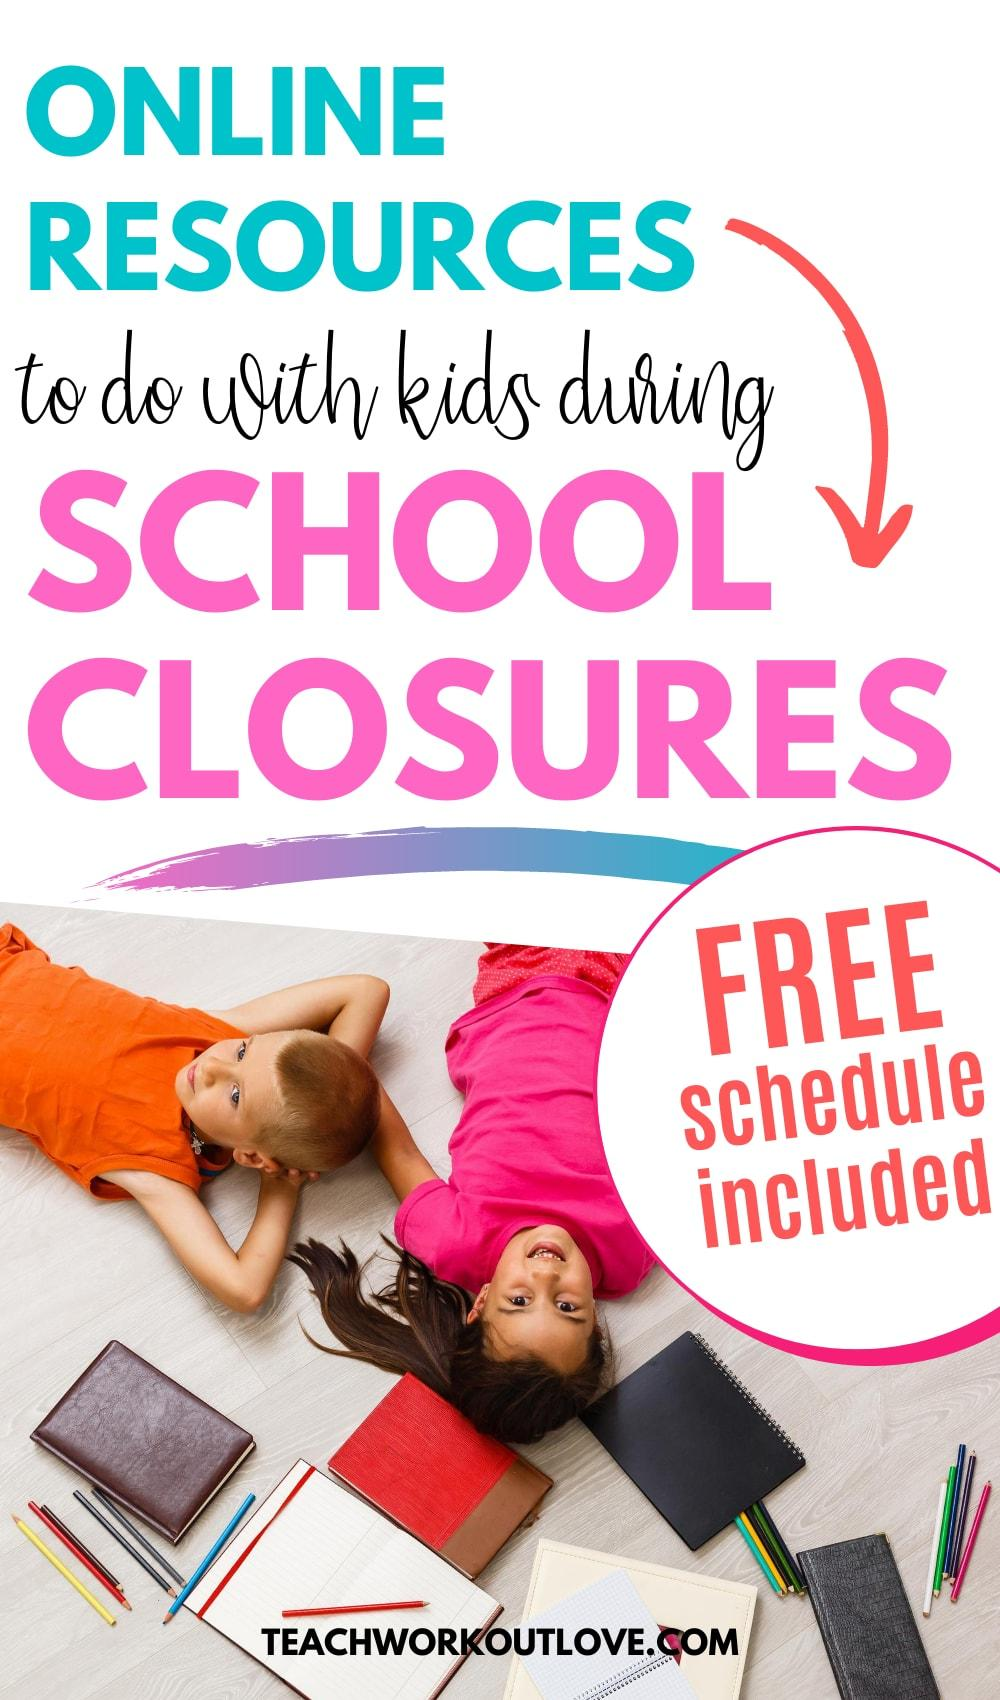 20+ Online Resources to do With Kids During School Closures [Printable Available]